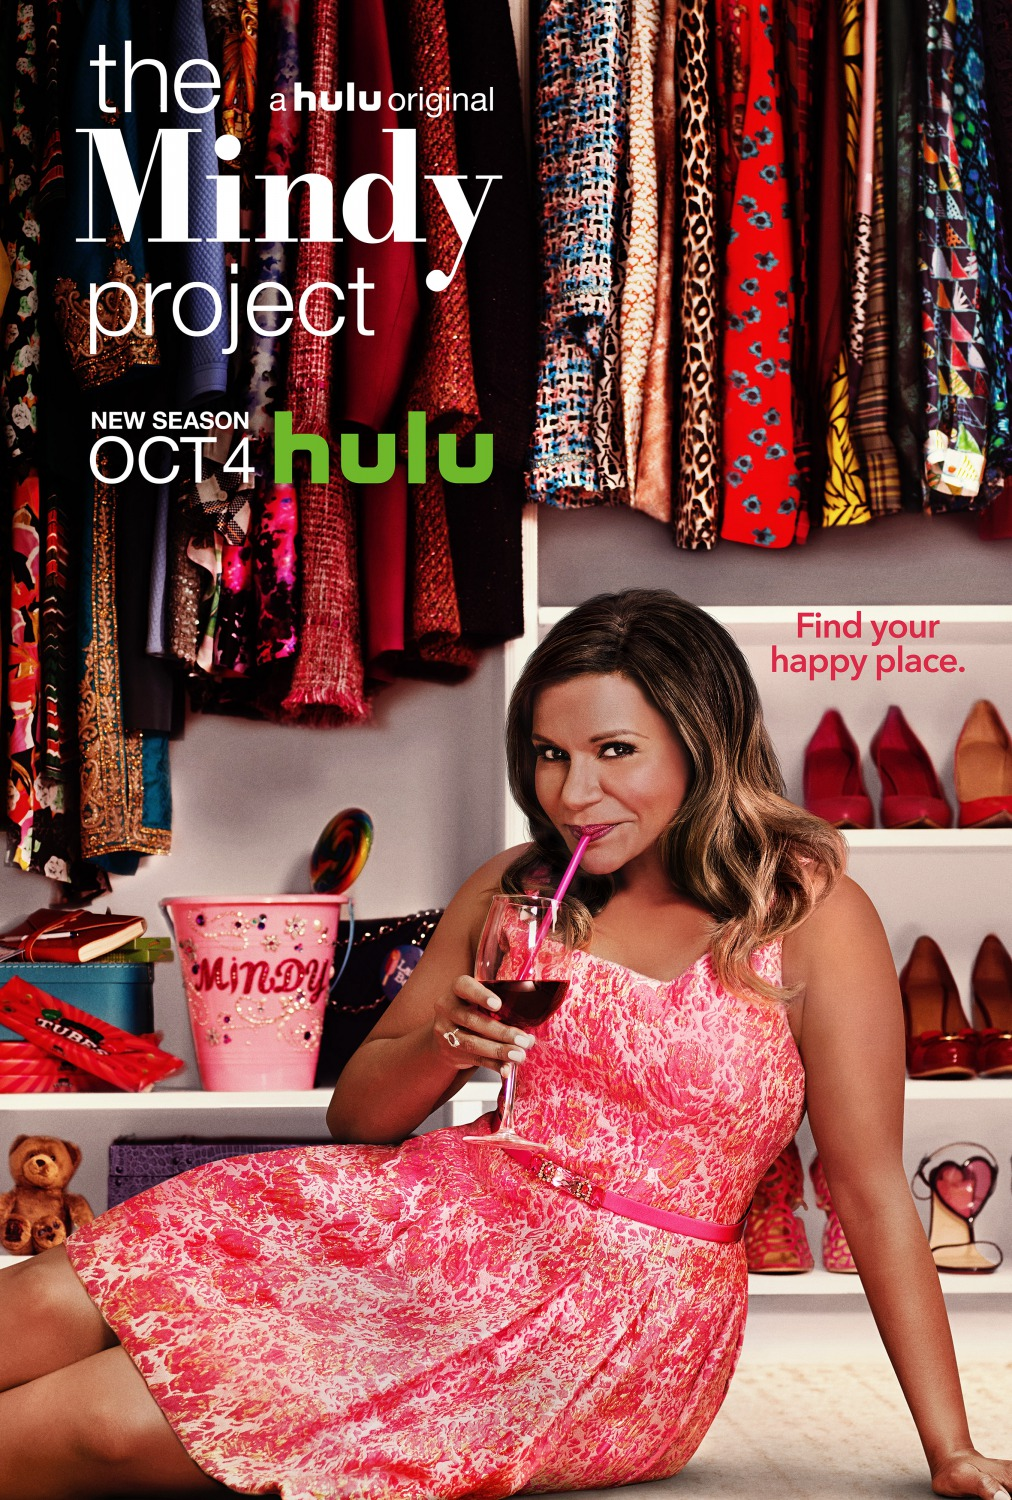 The Mindy project S05